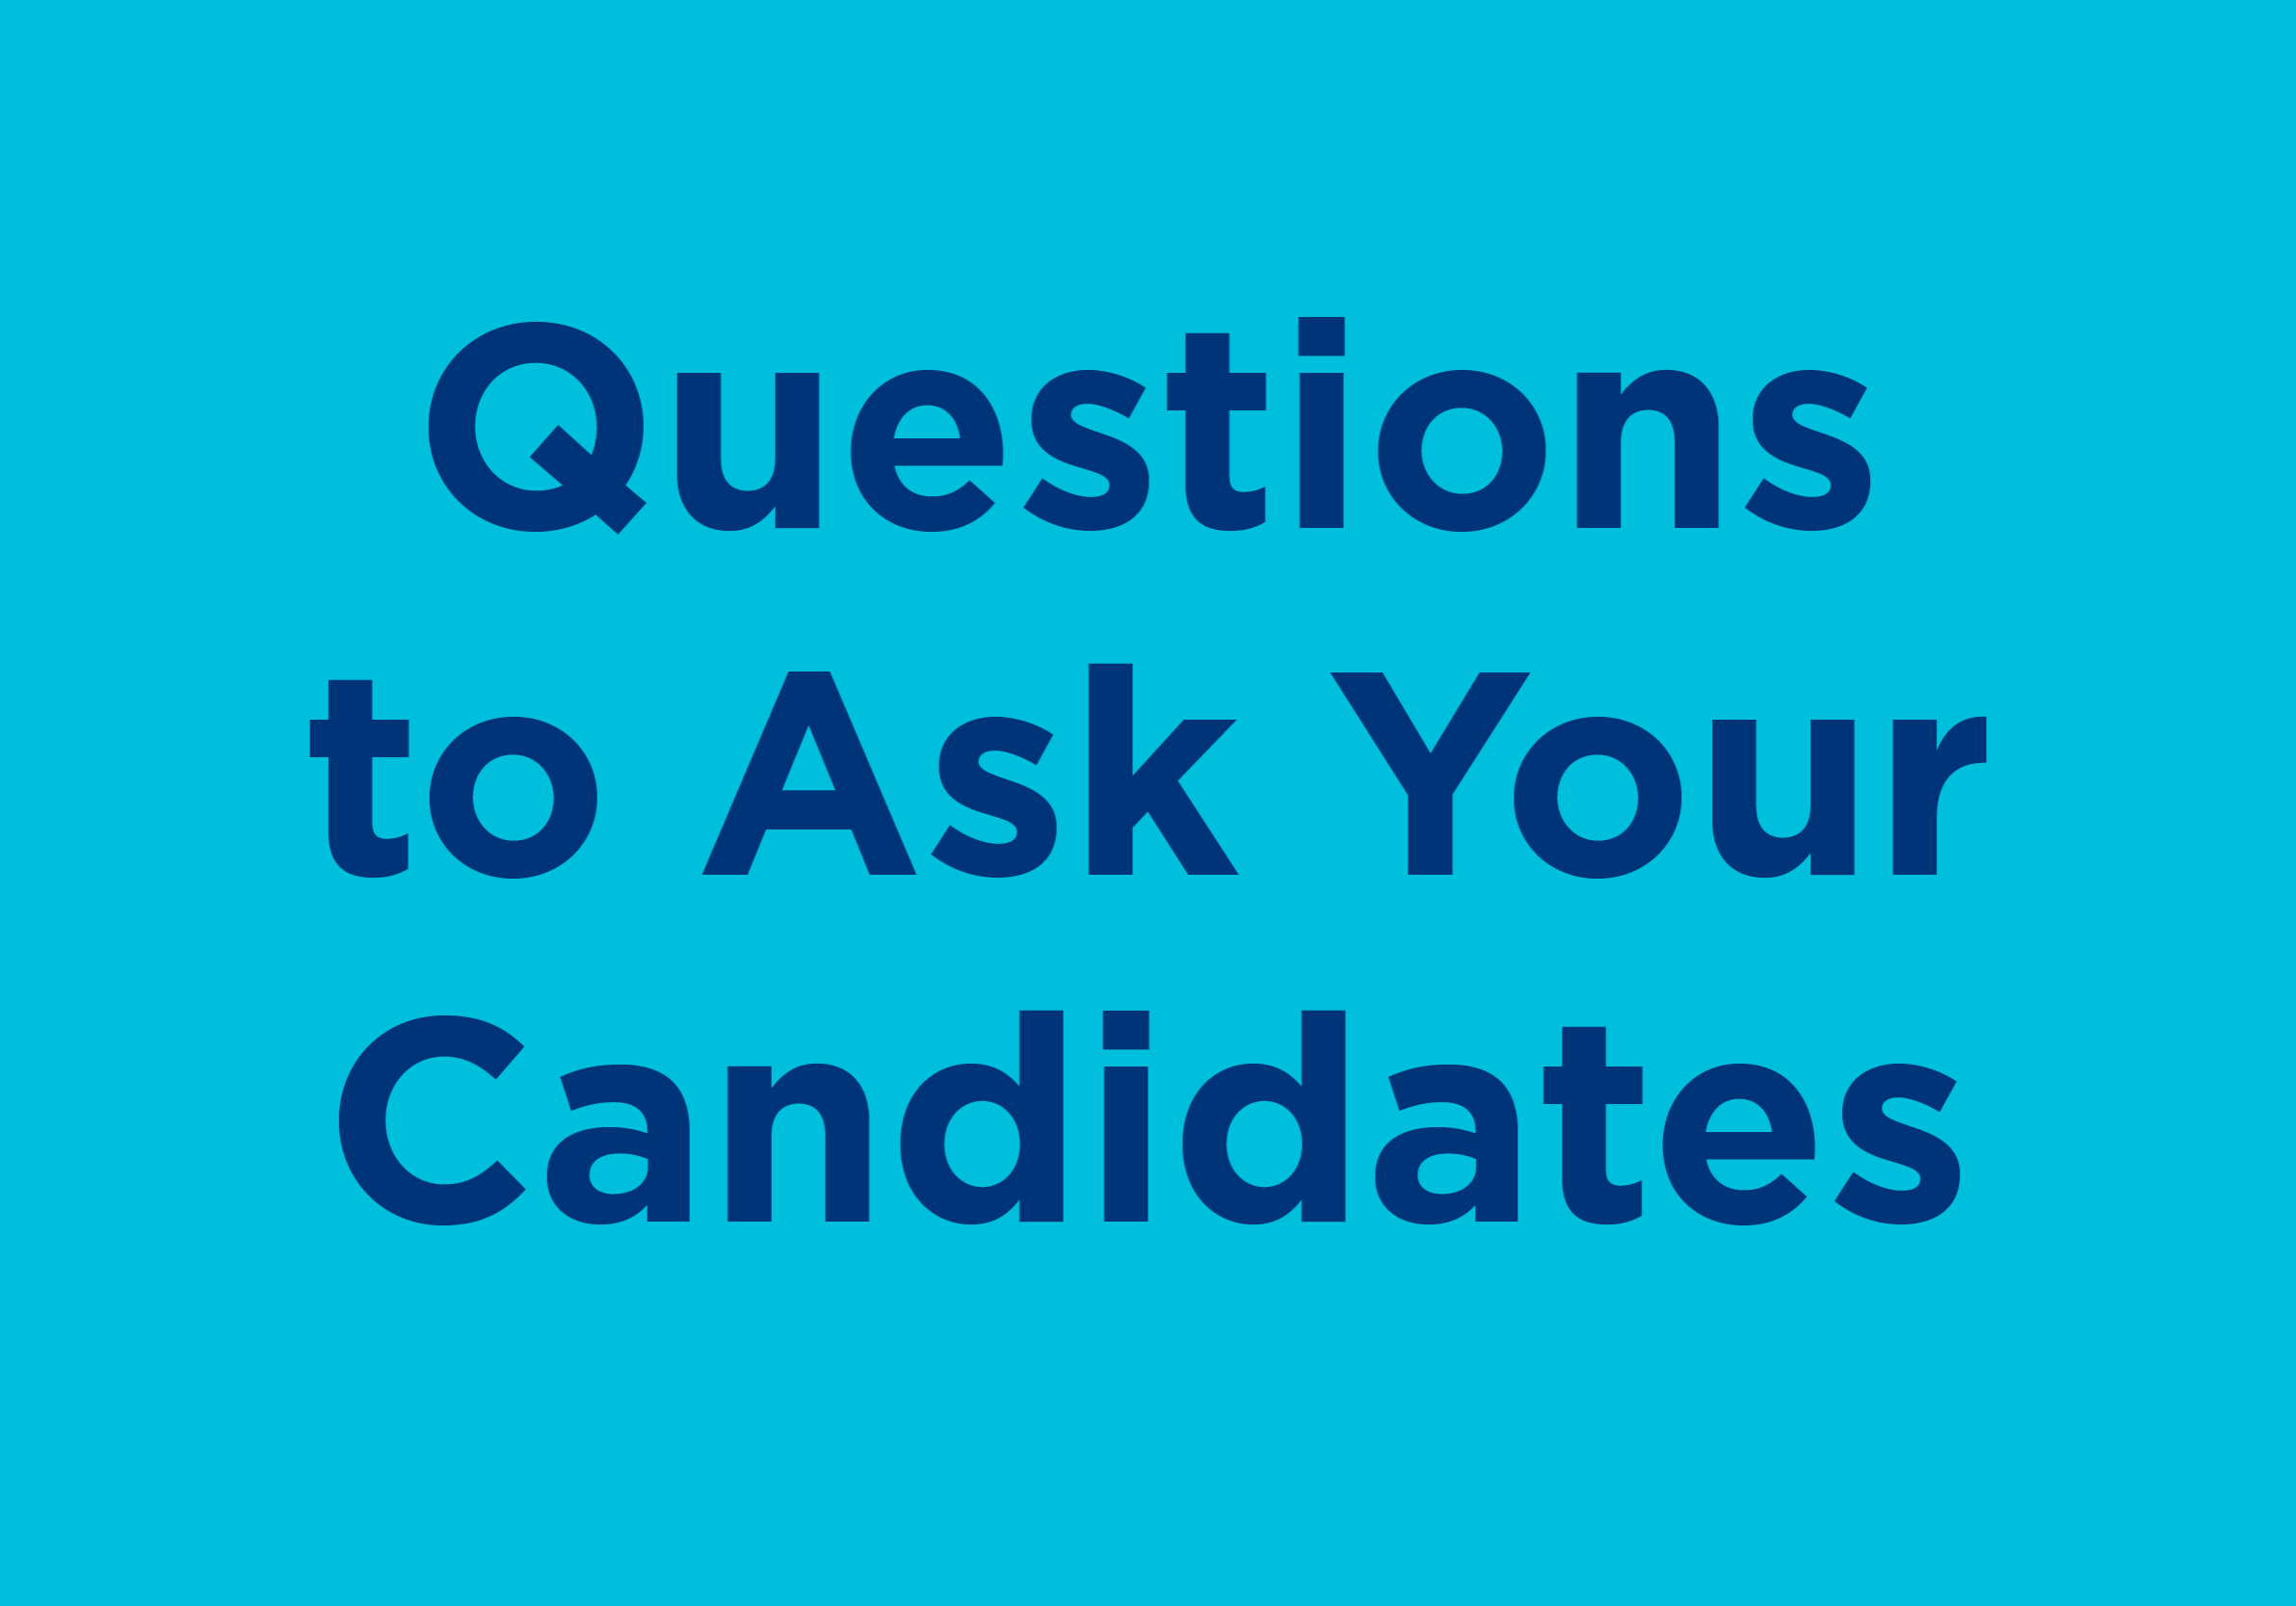 Questions to ask your candidates blog post